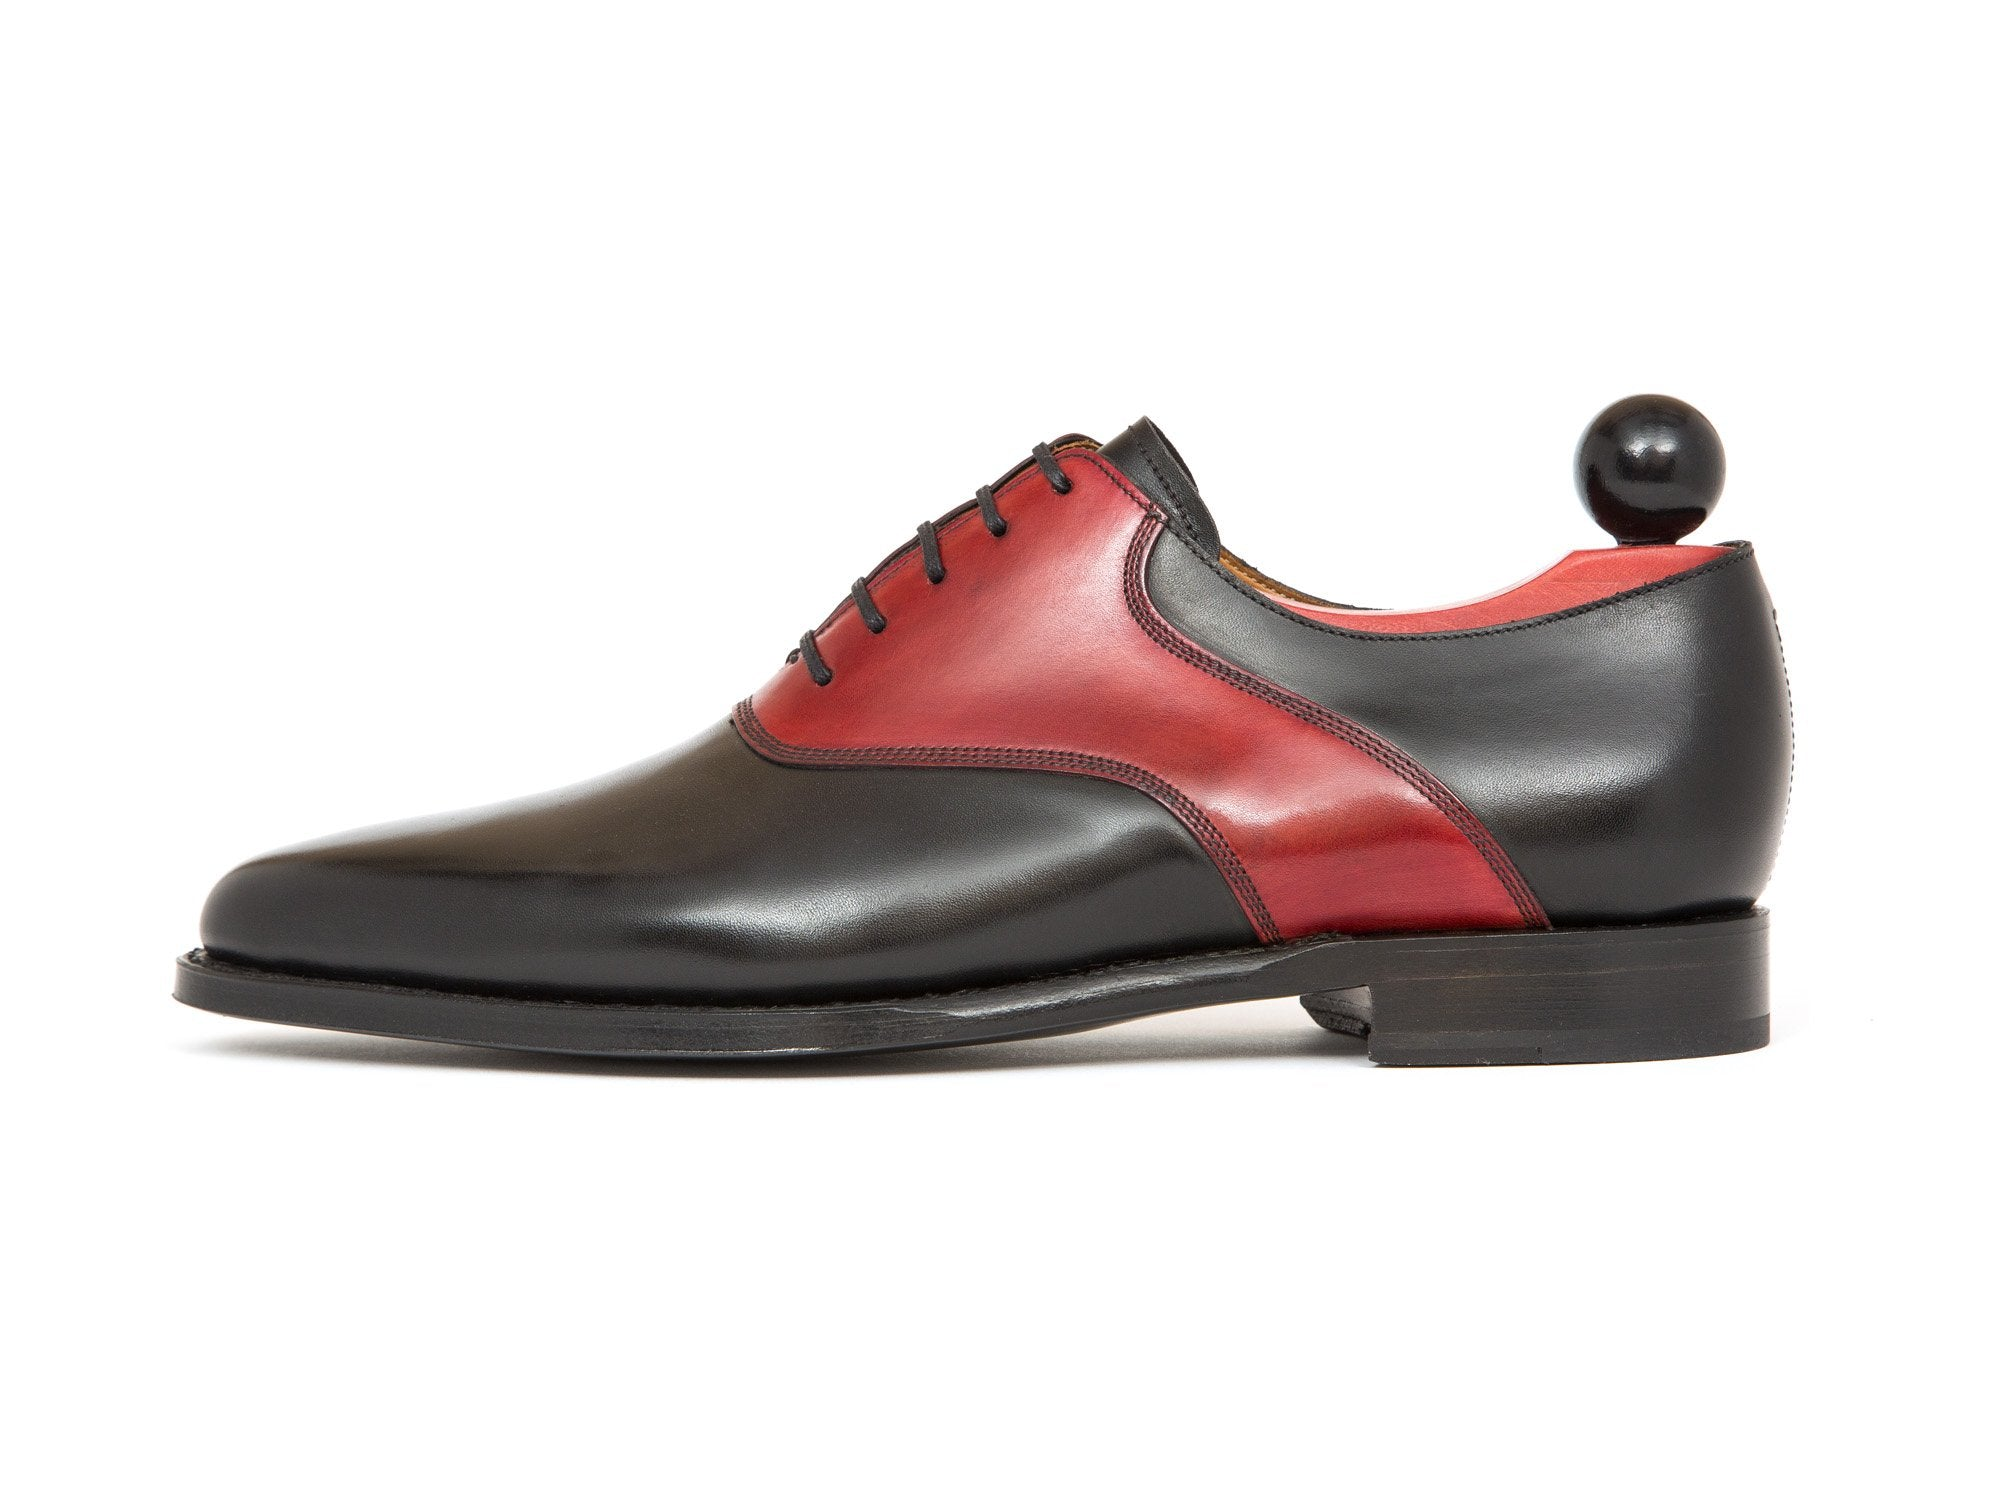 J.FitzPatrick Footwear - Stefano - Black Calf / Red Calf Saddle - JKF Last